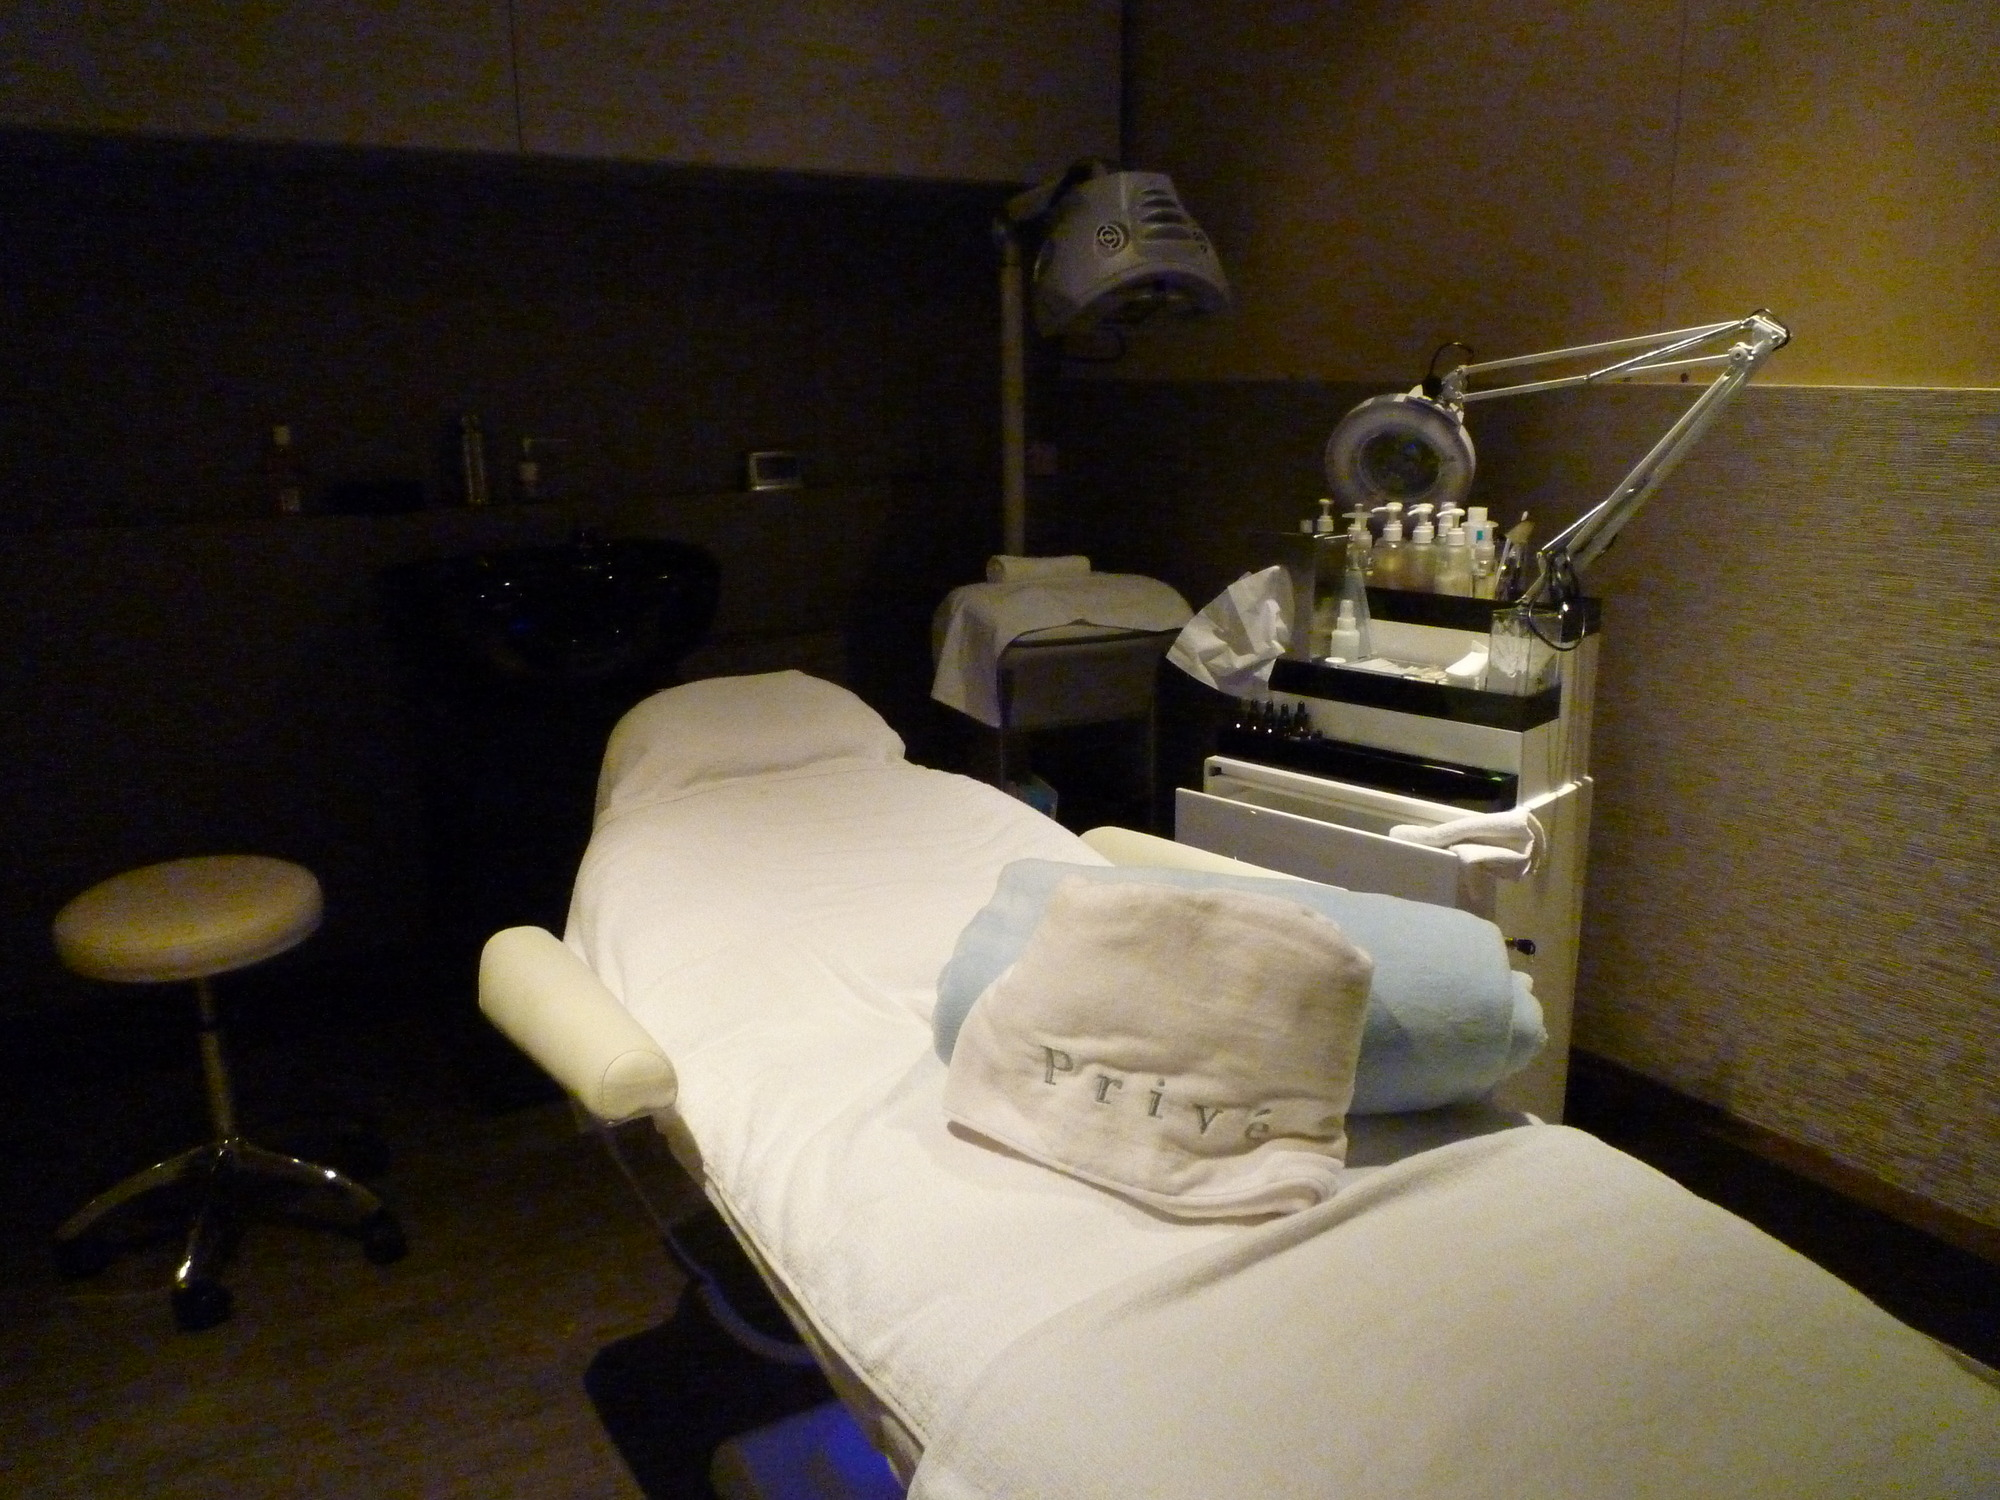 prive treatment room